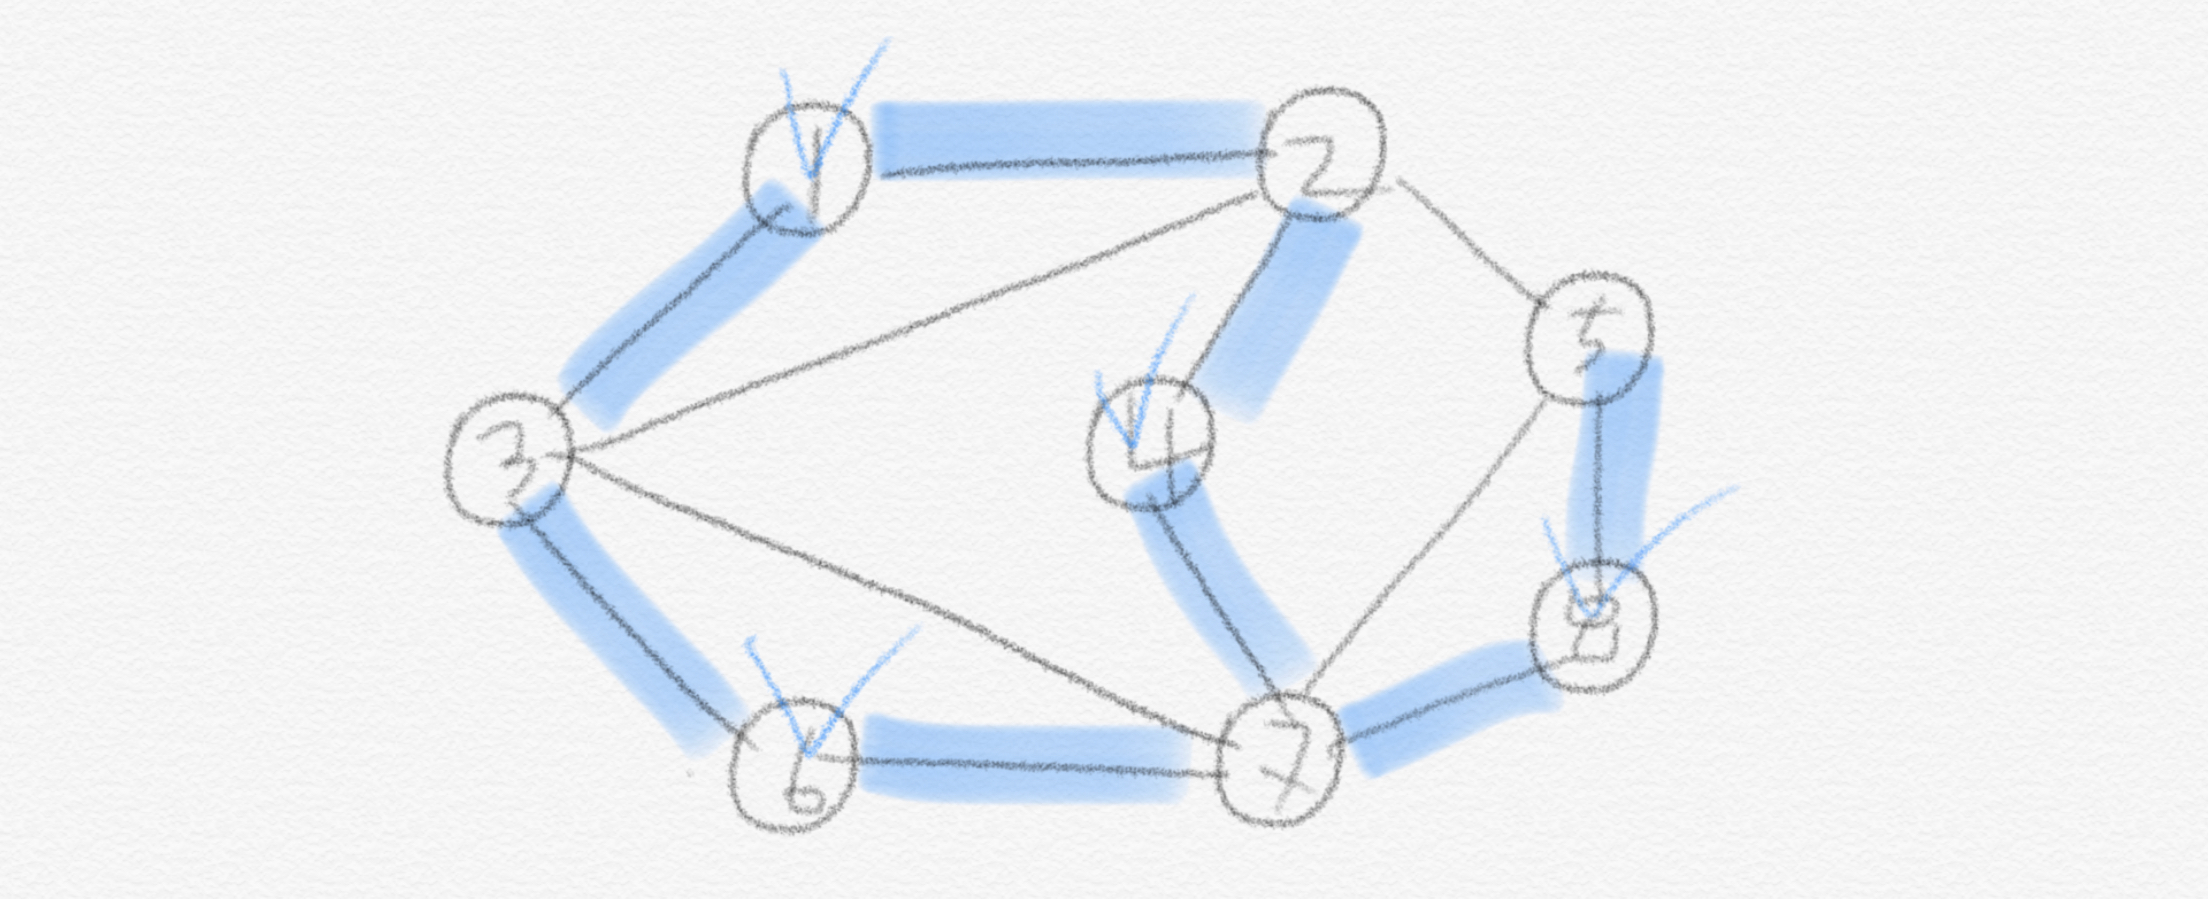 if independent set, no edges can have both vertices which are in S